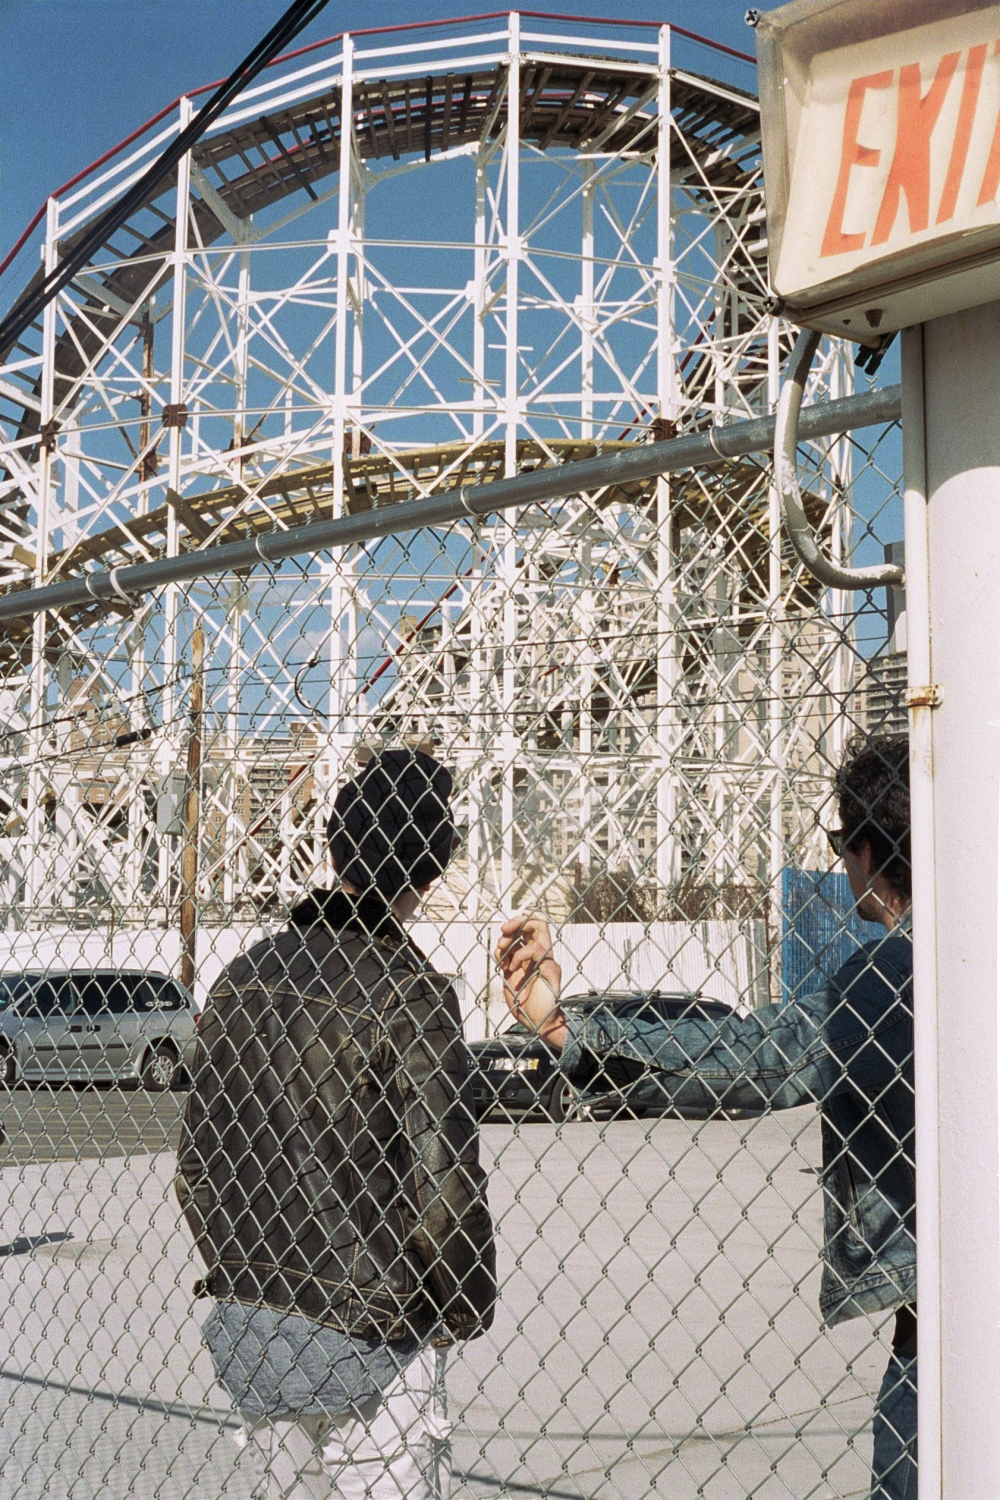 Malcolm and Peter at Coney Island, New York, NY